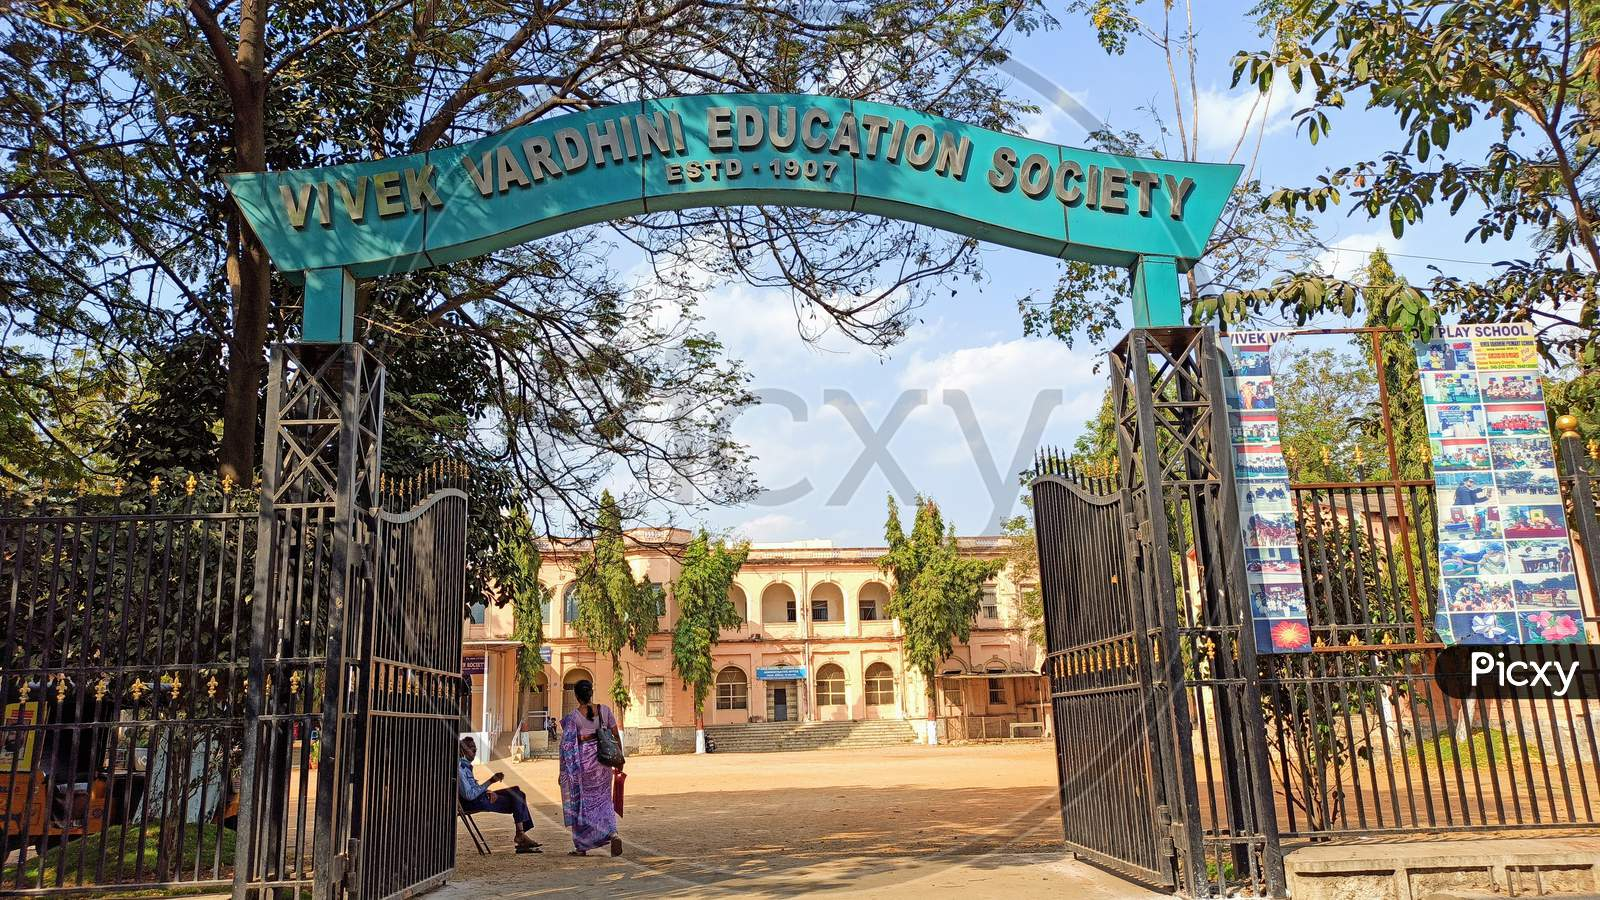 Vivek Vardhini Education Society Jambagh Hyderabad Telangana India